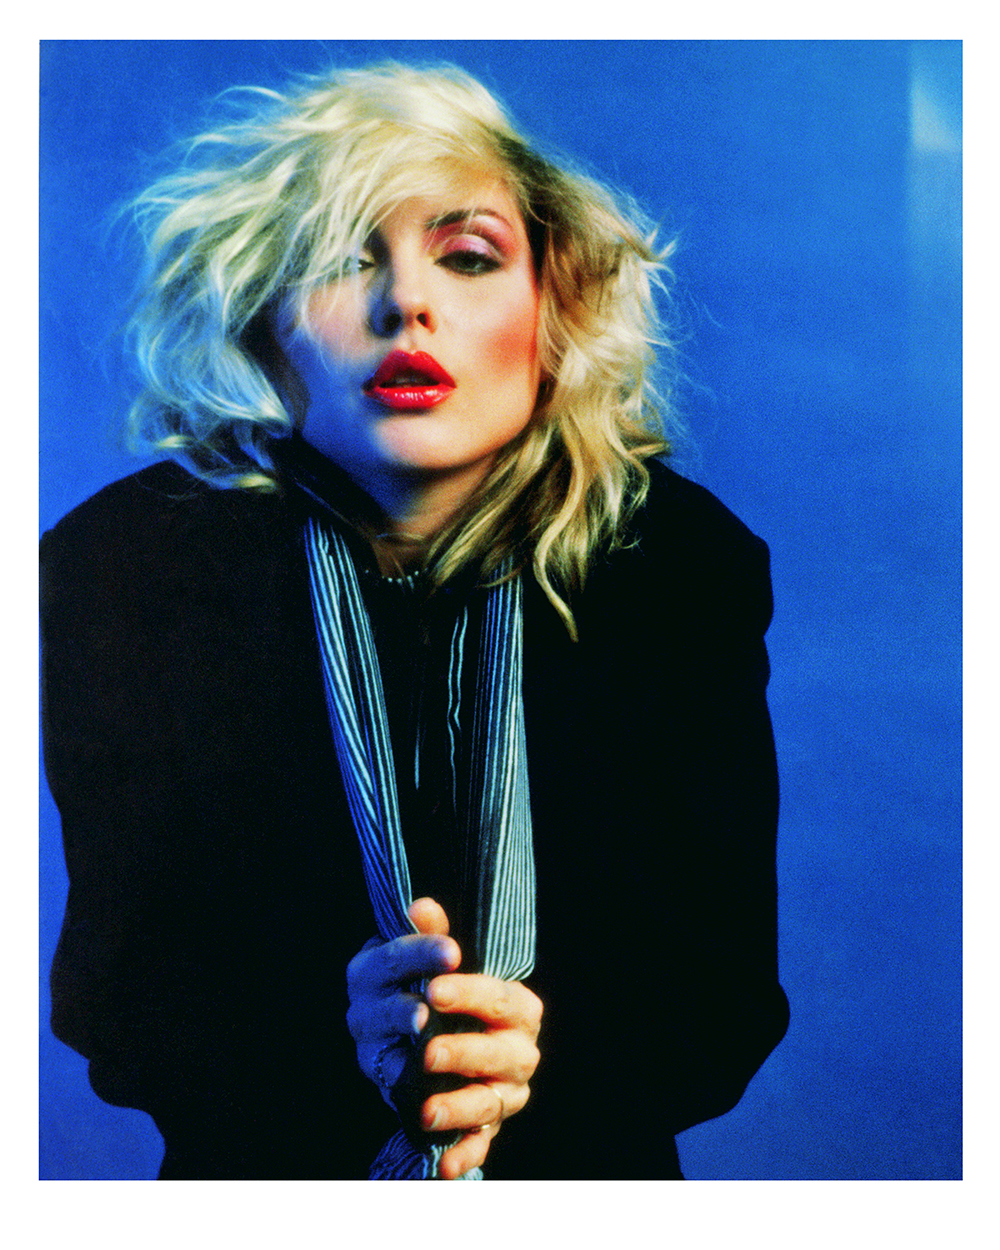 Blue Debbie Harry © Mick Rock